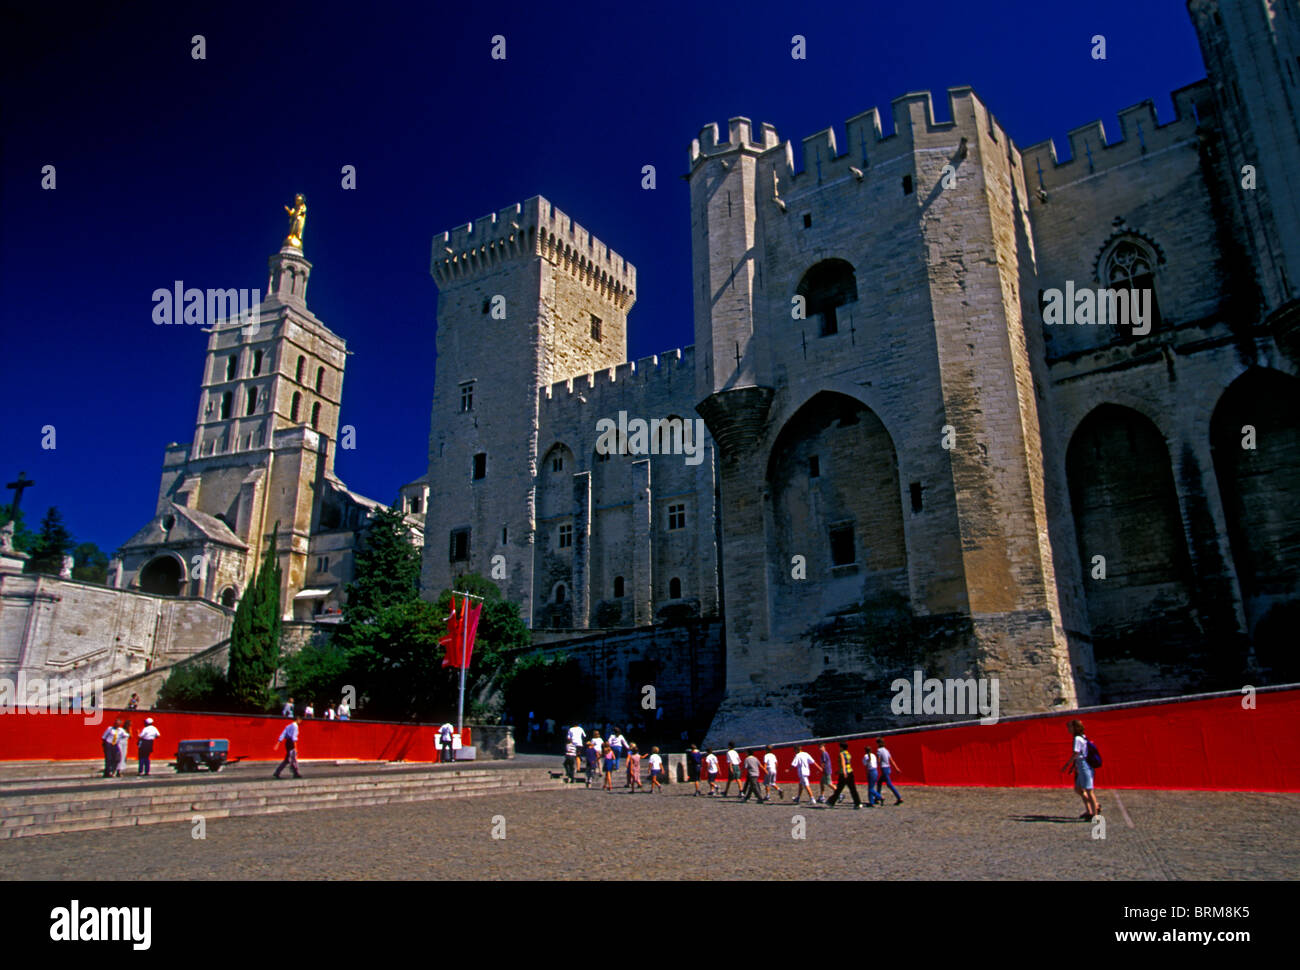 French people tourists, Notre-Dame des Doms Cathedral, Palace of the Popes, city of Avignon, Avignon, Provence, - Stock Image